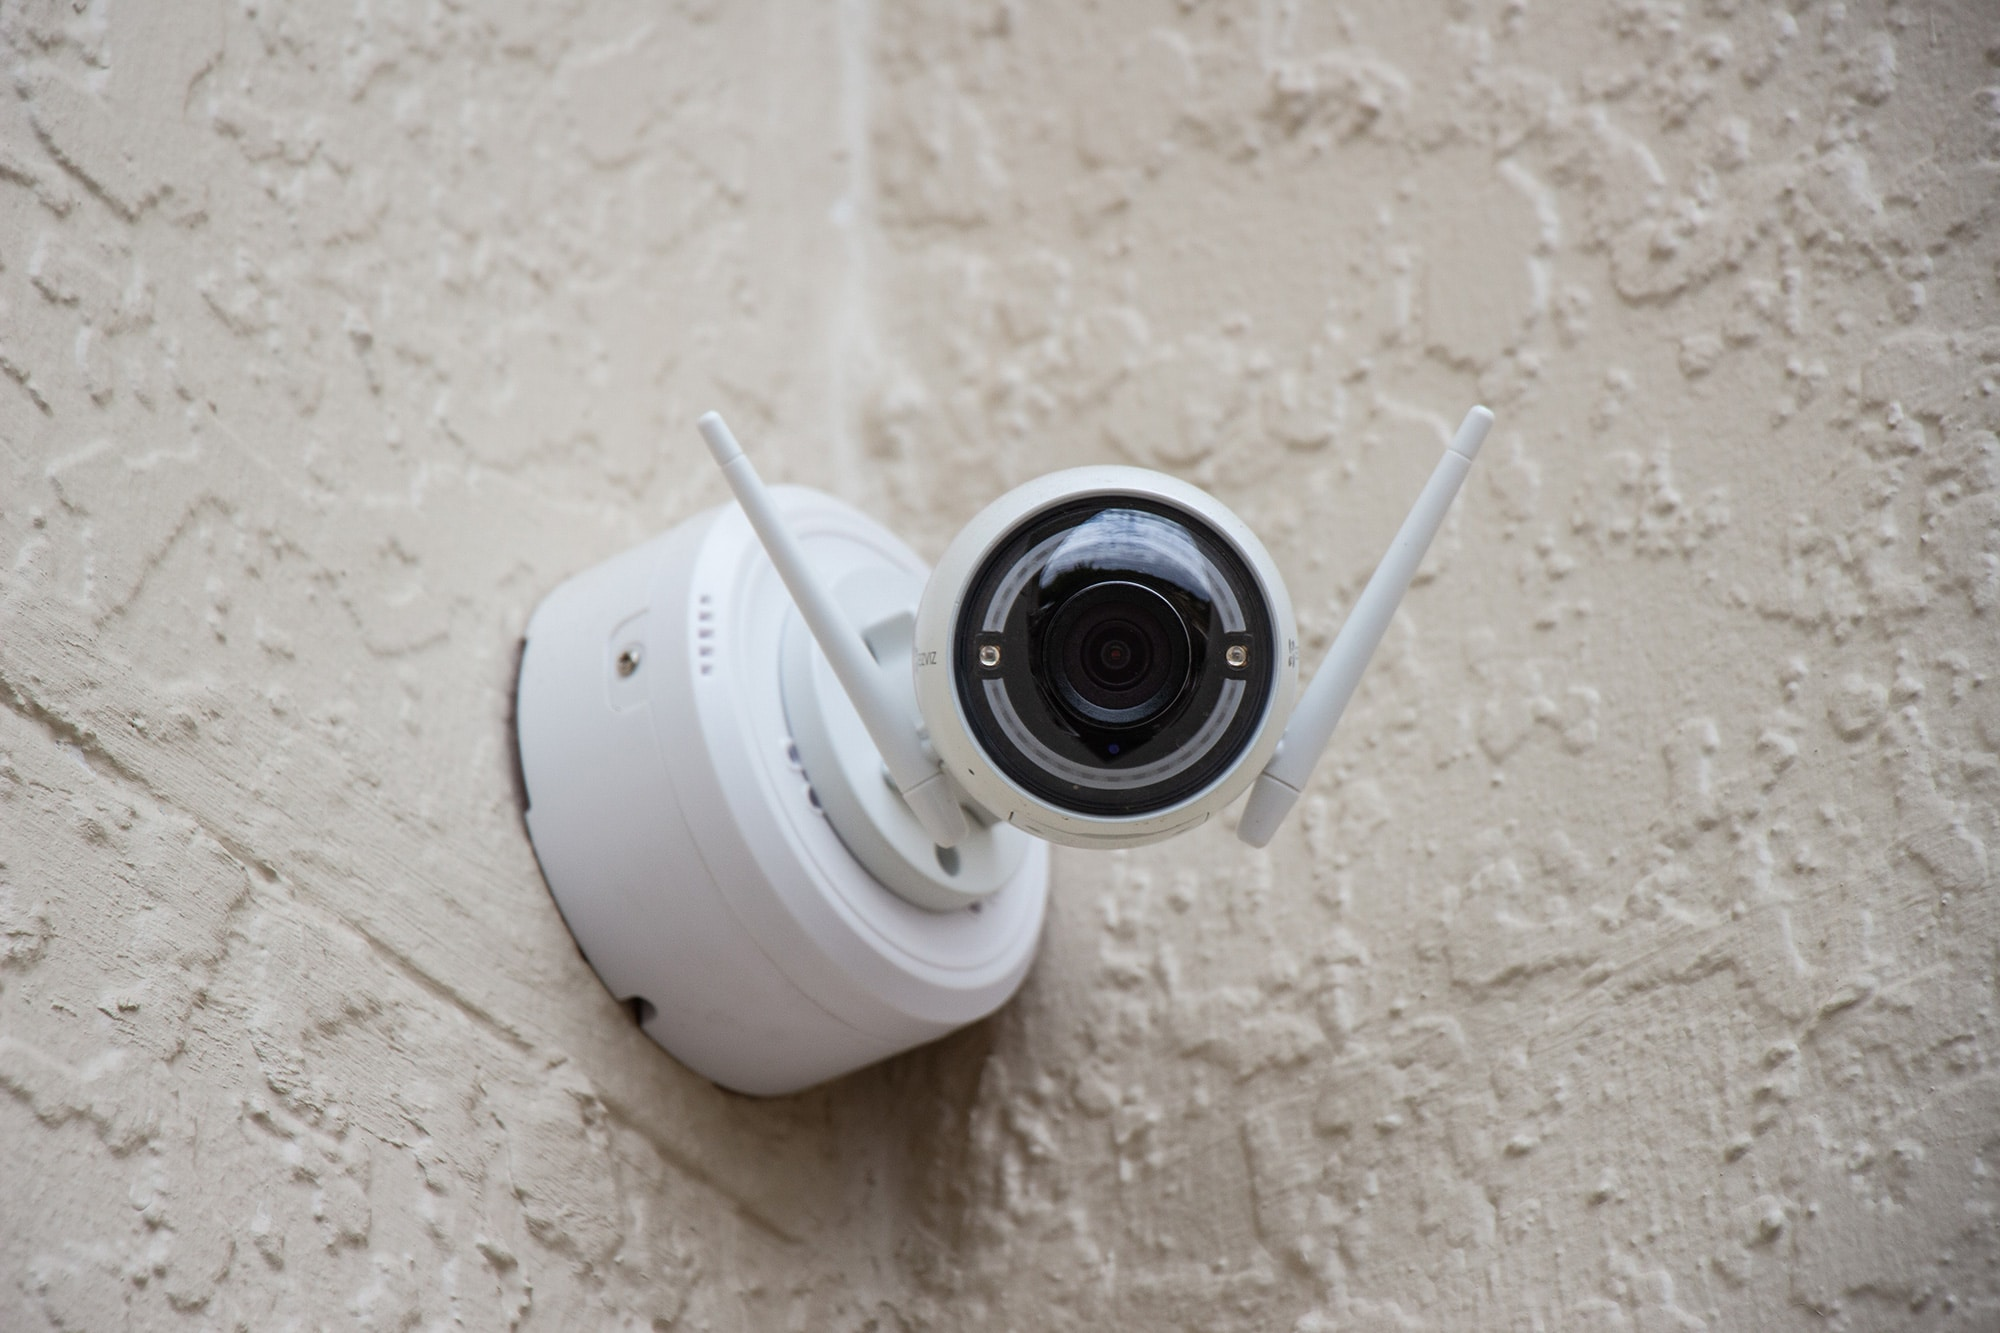 Photo of security camera mounted on a wall